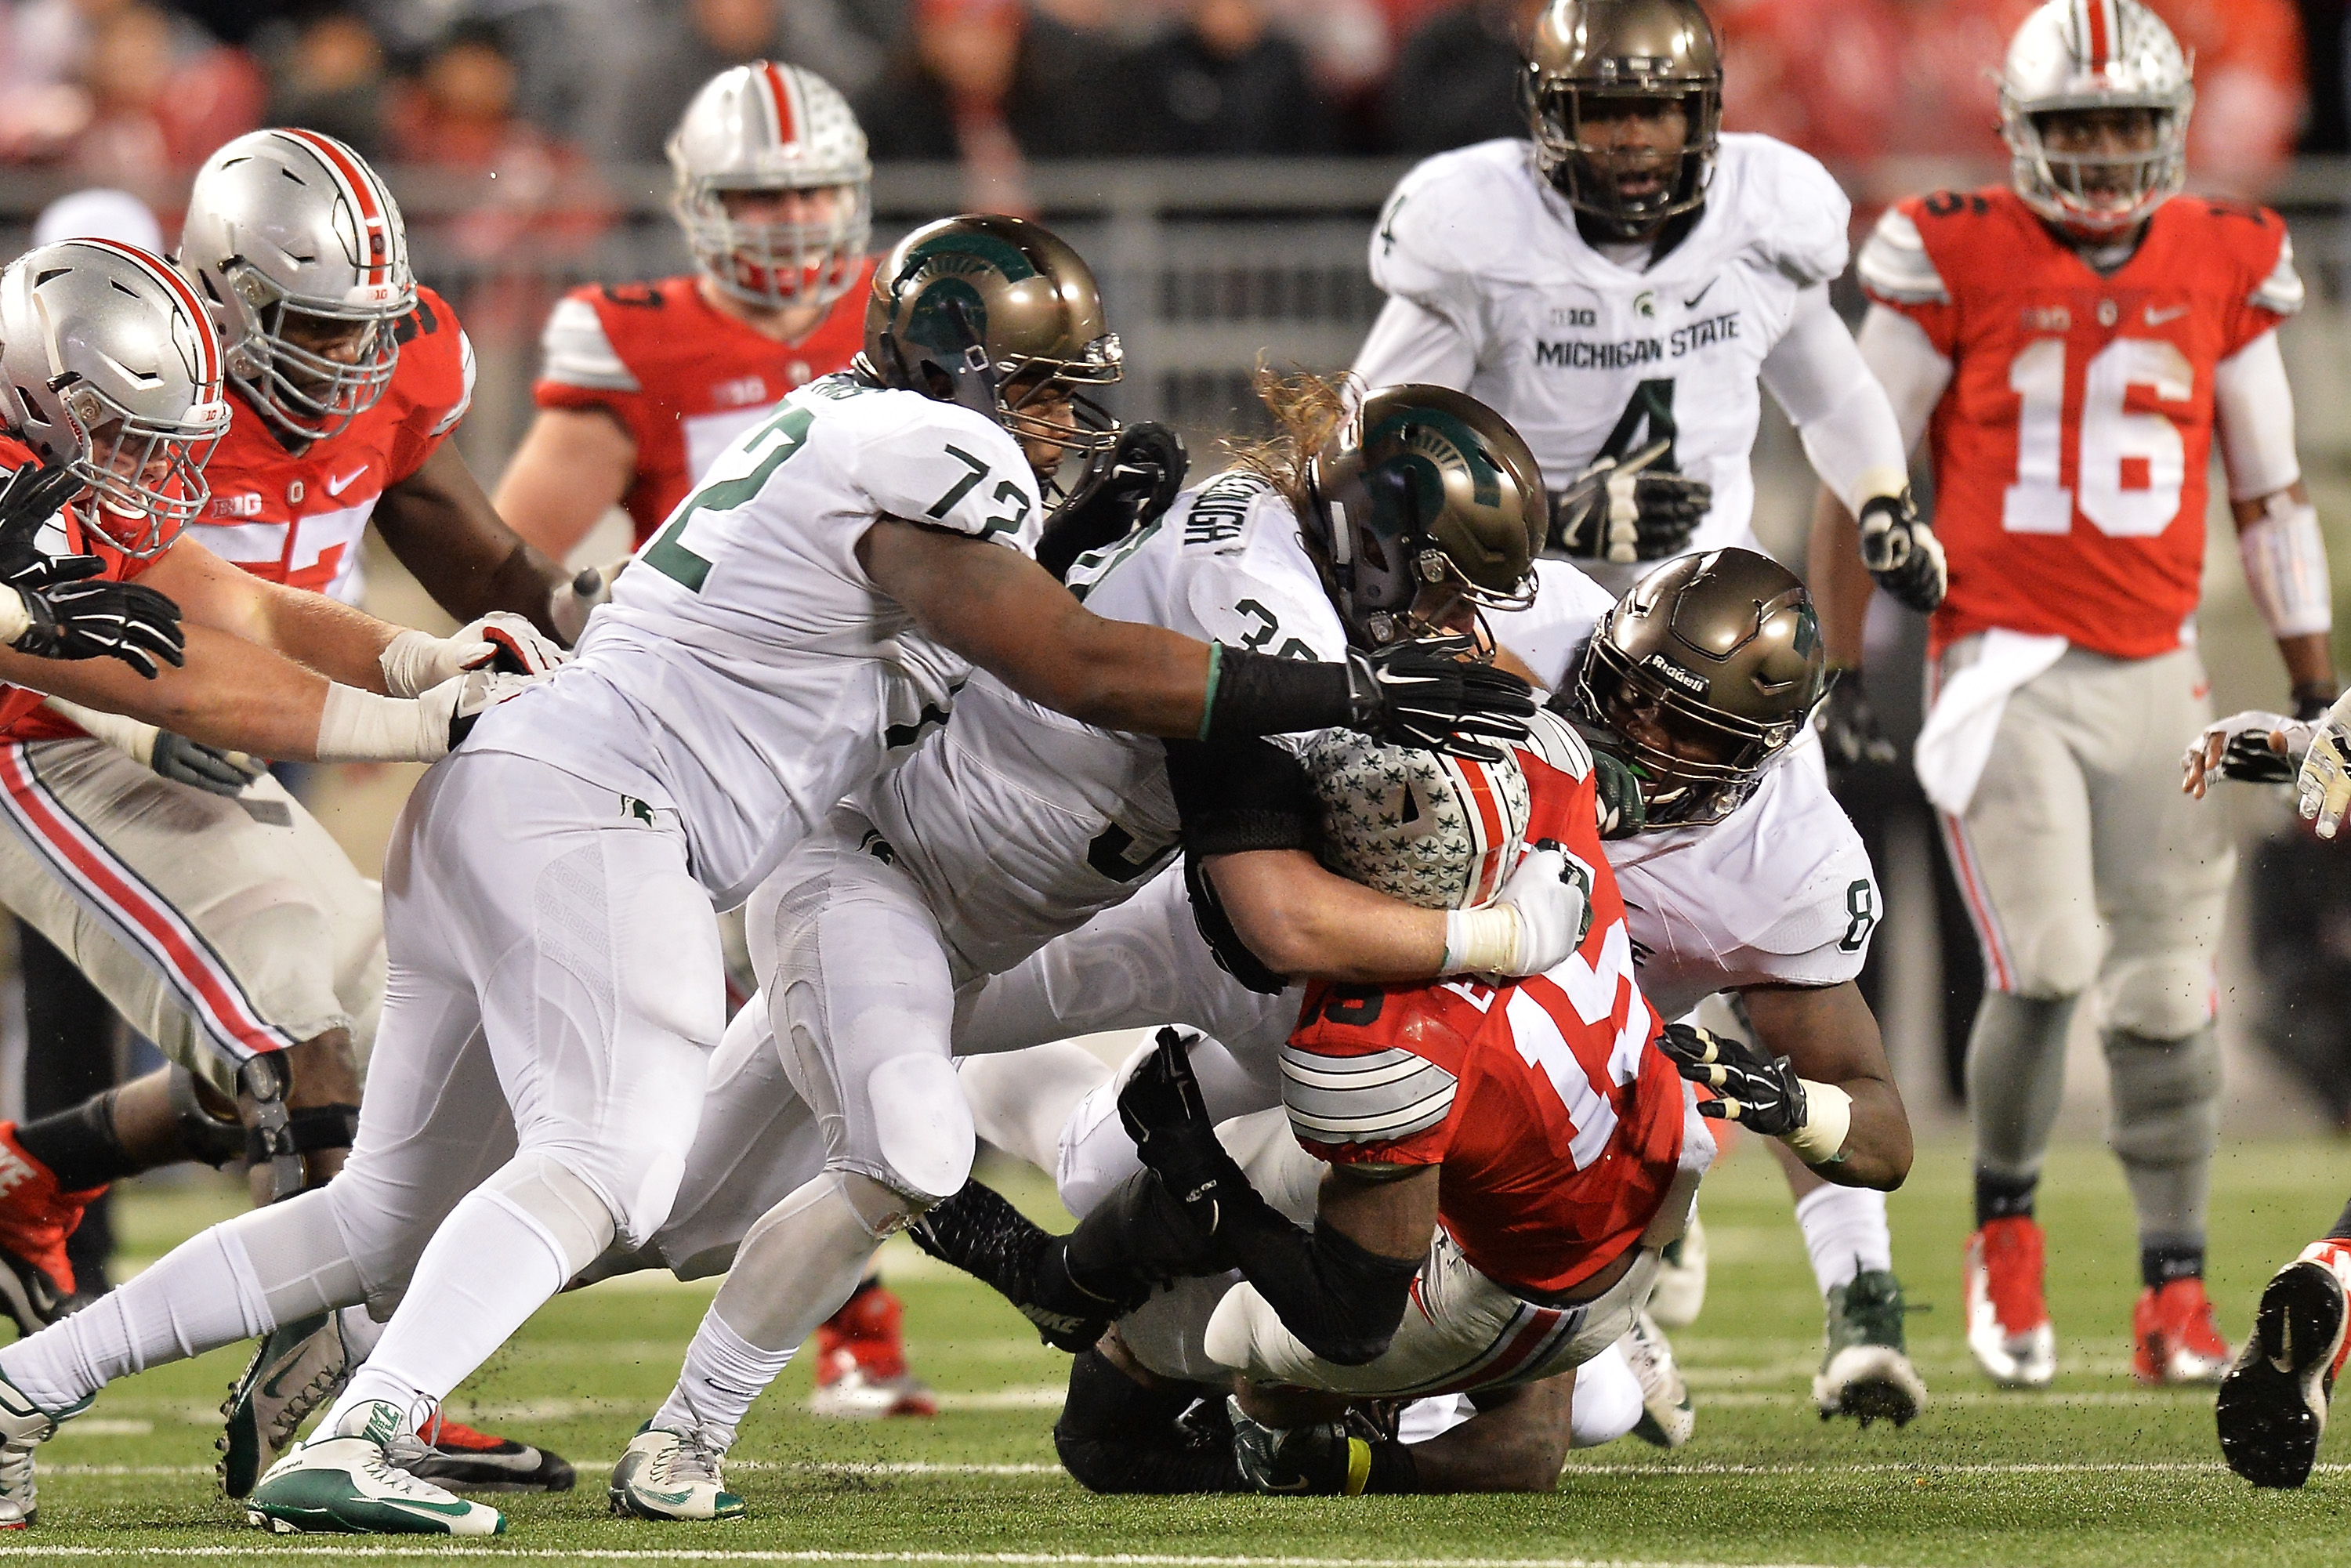 COLUMBUS, OH - NOVEMBER 21:  Ezekiel Elliott #15 of the Ohio State Buckeyes is gang tackled by Craig Evans #72 of the Michigan State Spartans, Riley Bullough #30 of the Michigan State Spartans and Lawrence Thomas #8 of the Michigan State Spartans in the third quarter at Ohio Stadium on November 21, 2015 in Columbus, Ohio. Michigan State defeated Ohio State 17-14.  (Photo by Jamie Sabau/Getty Images)